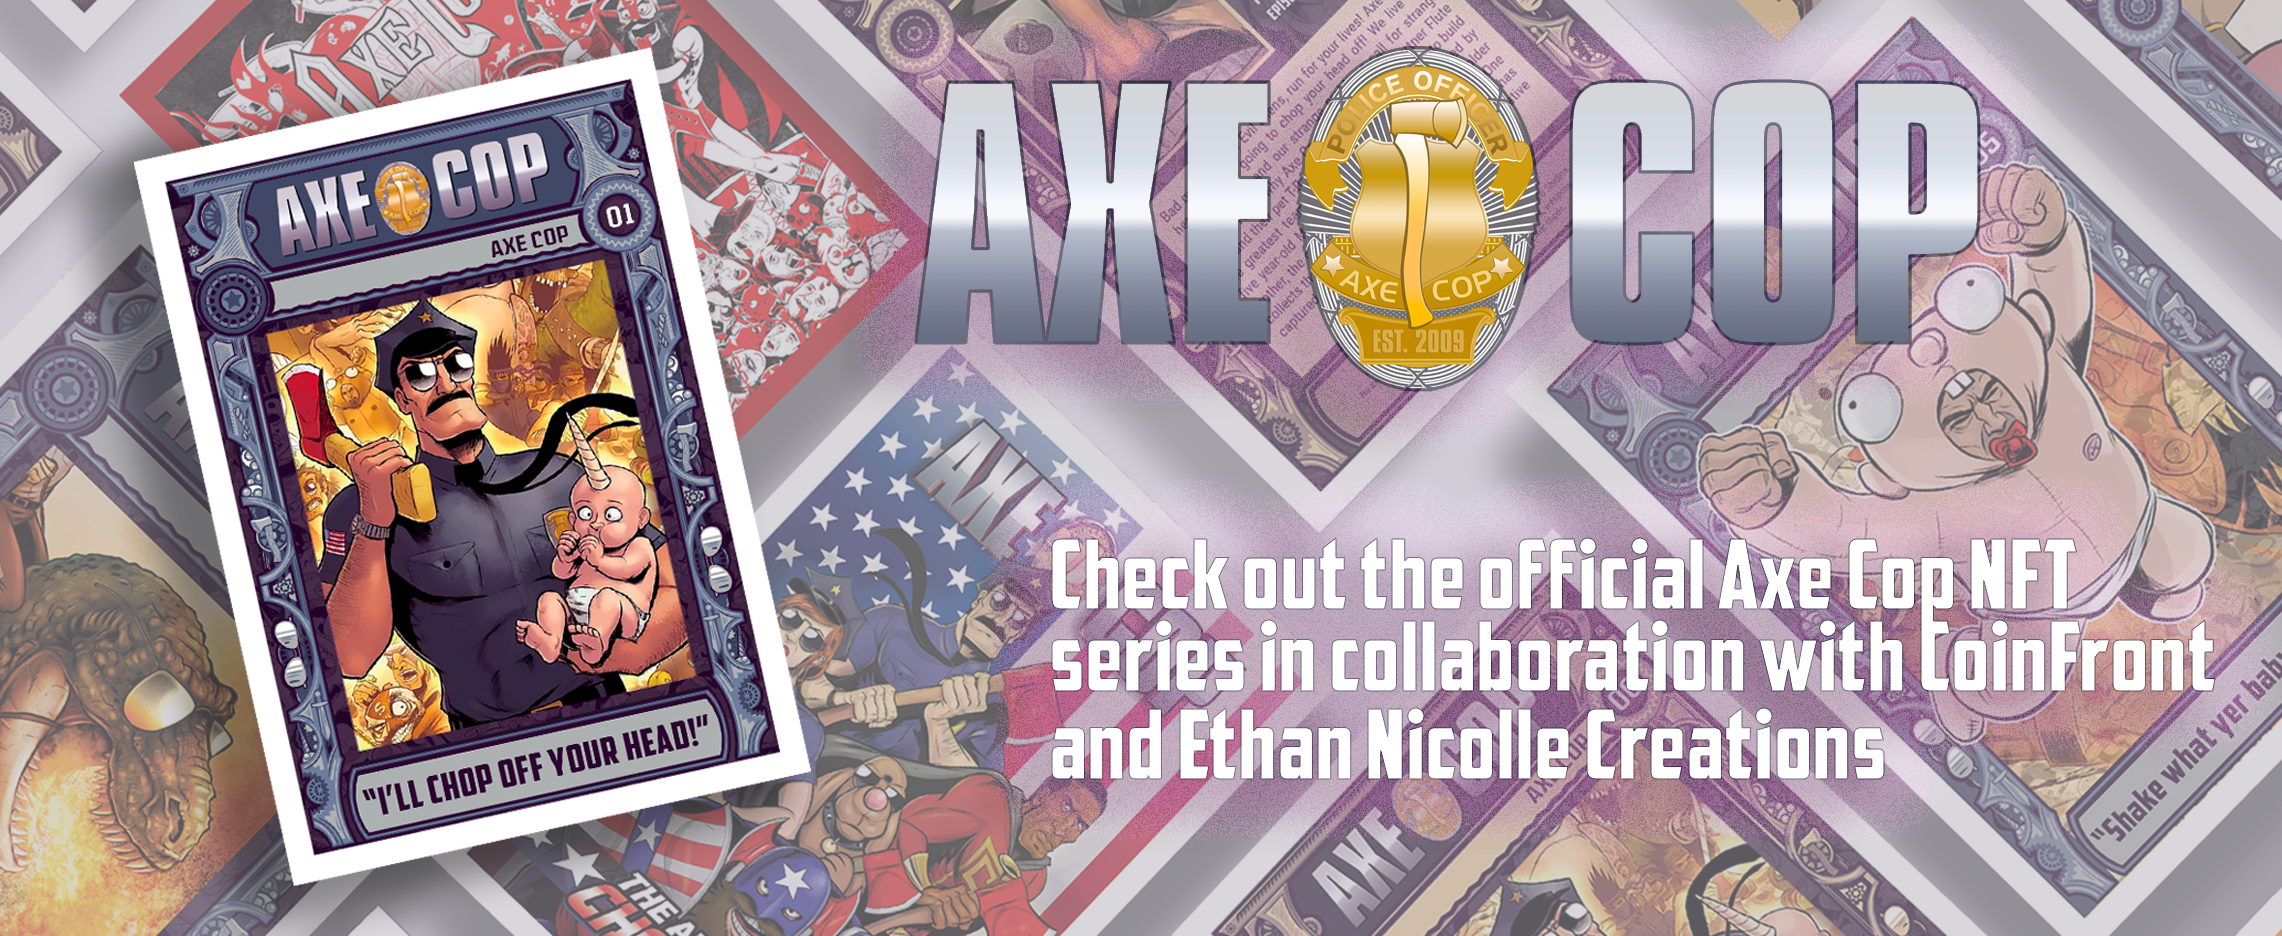 """Axe Cop NFT promo image. Axe Cop card on the far left, on the right side it says, """"Axe Cop. Check out the official Axe Cop NFT series in collaboration with CoinFront and Ethan Nicolle Creations."""